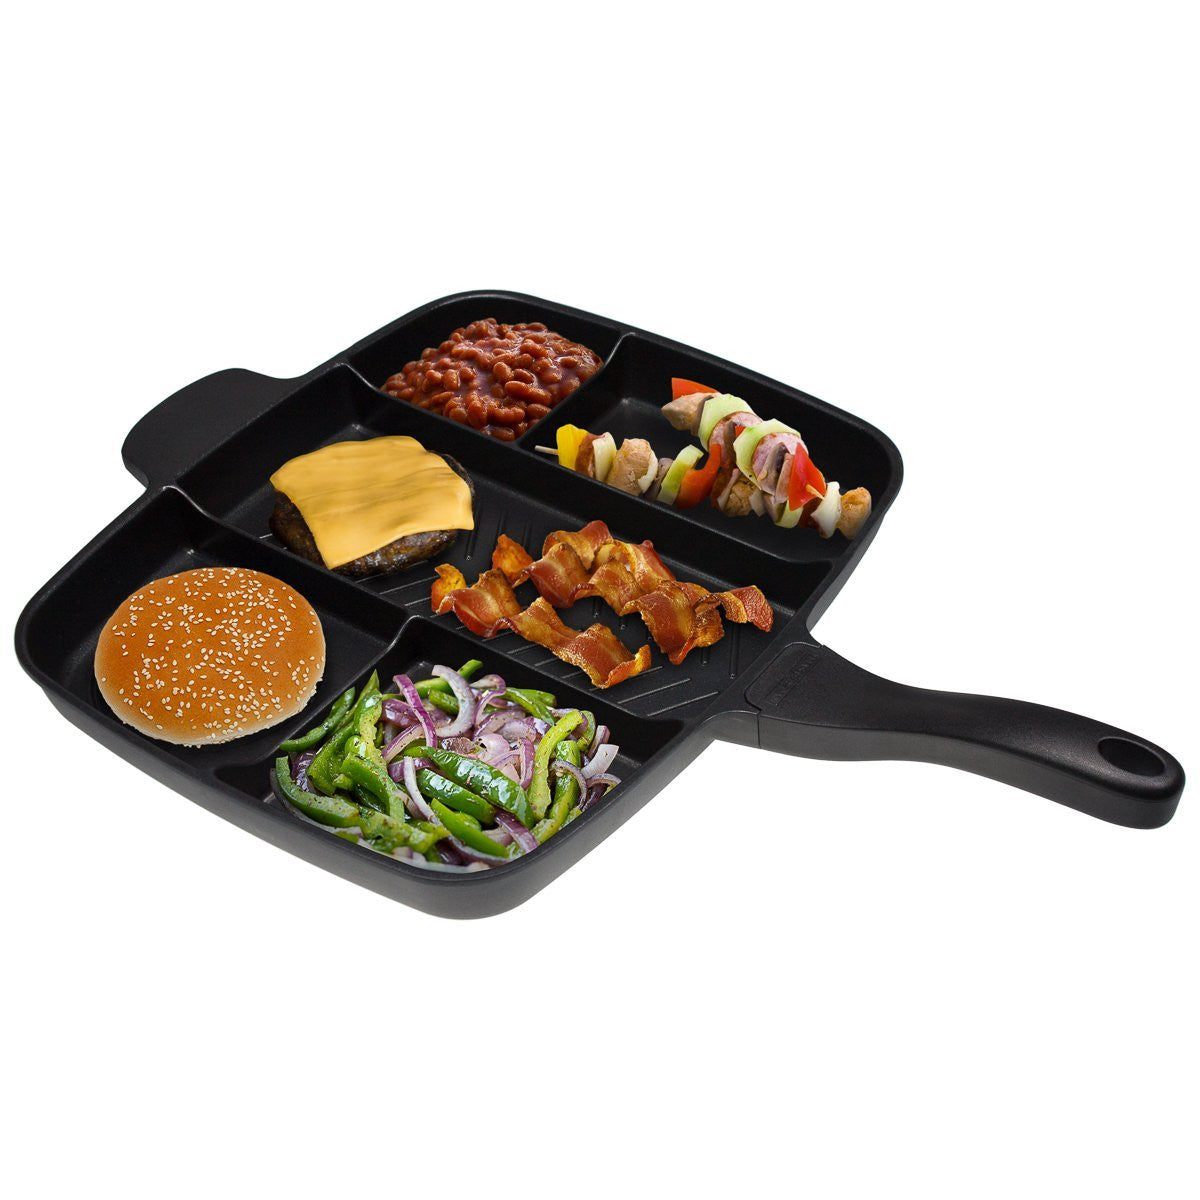 Master Pan Non-Stick Divided Grill/Fry/Oven Meal Skillet